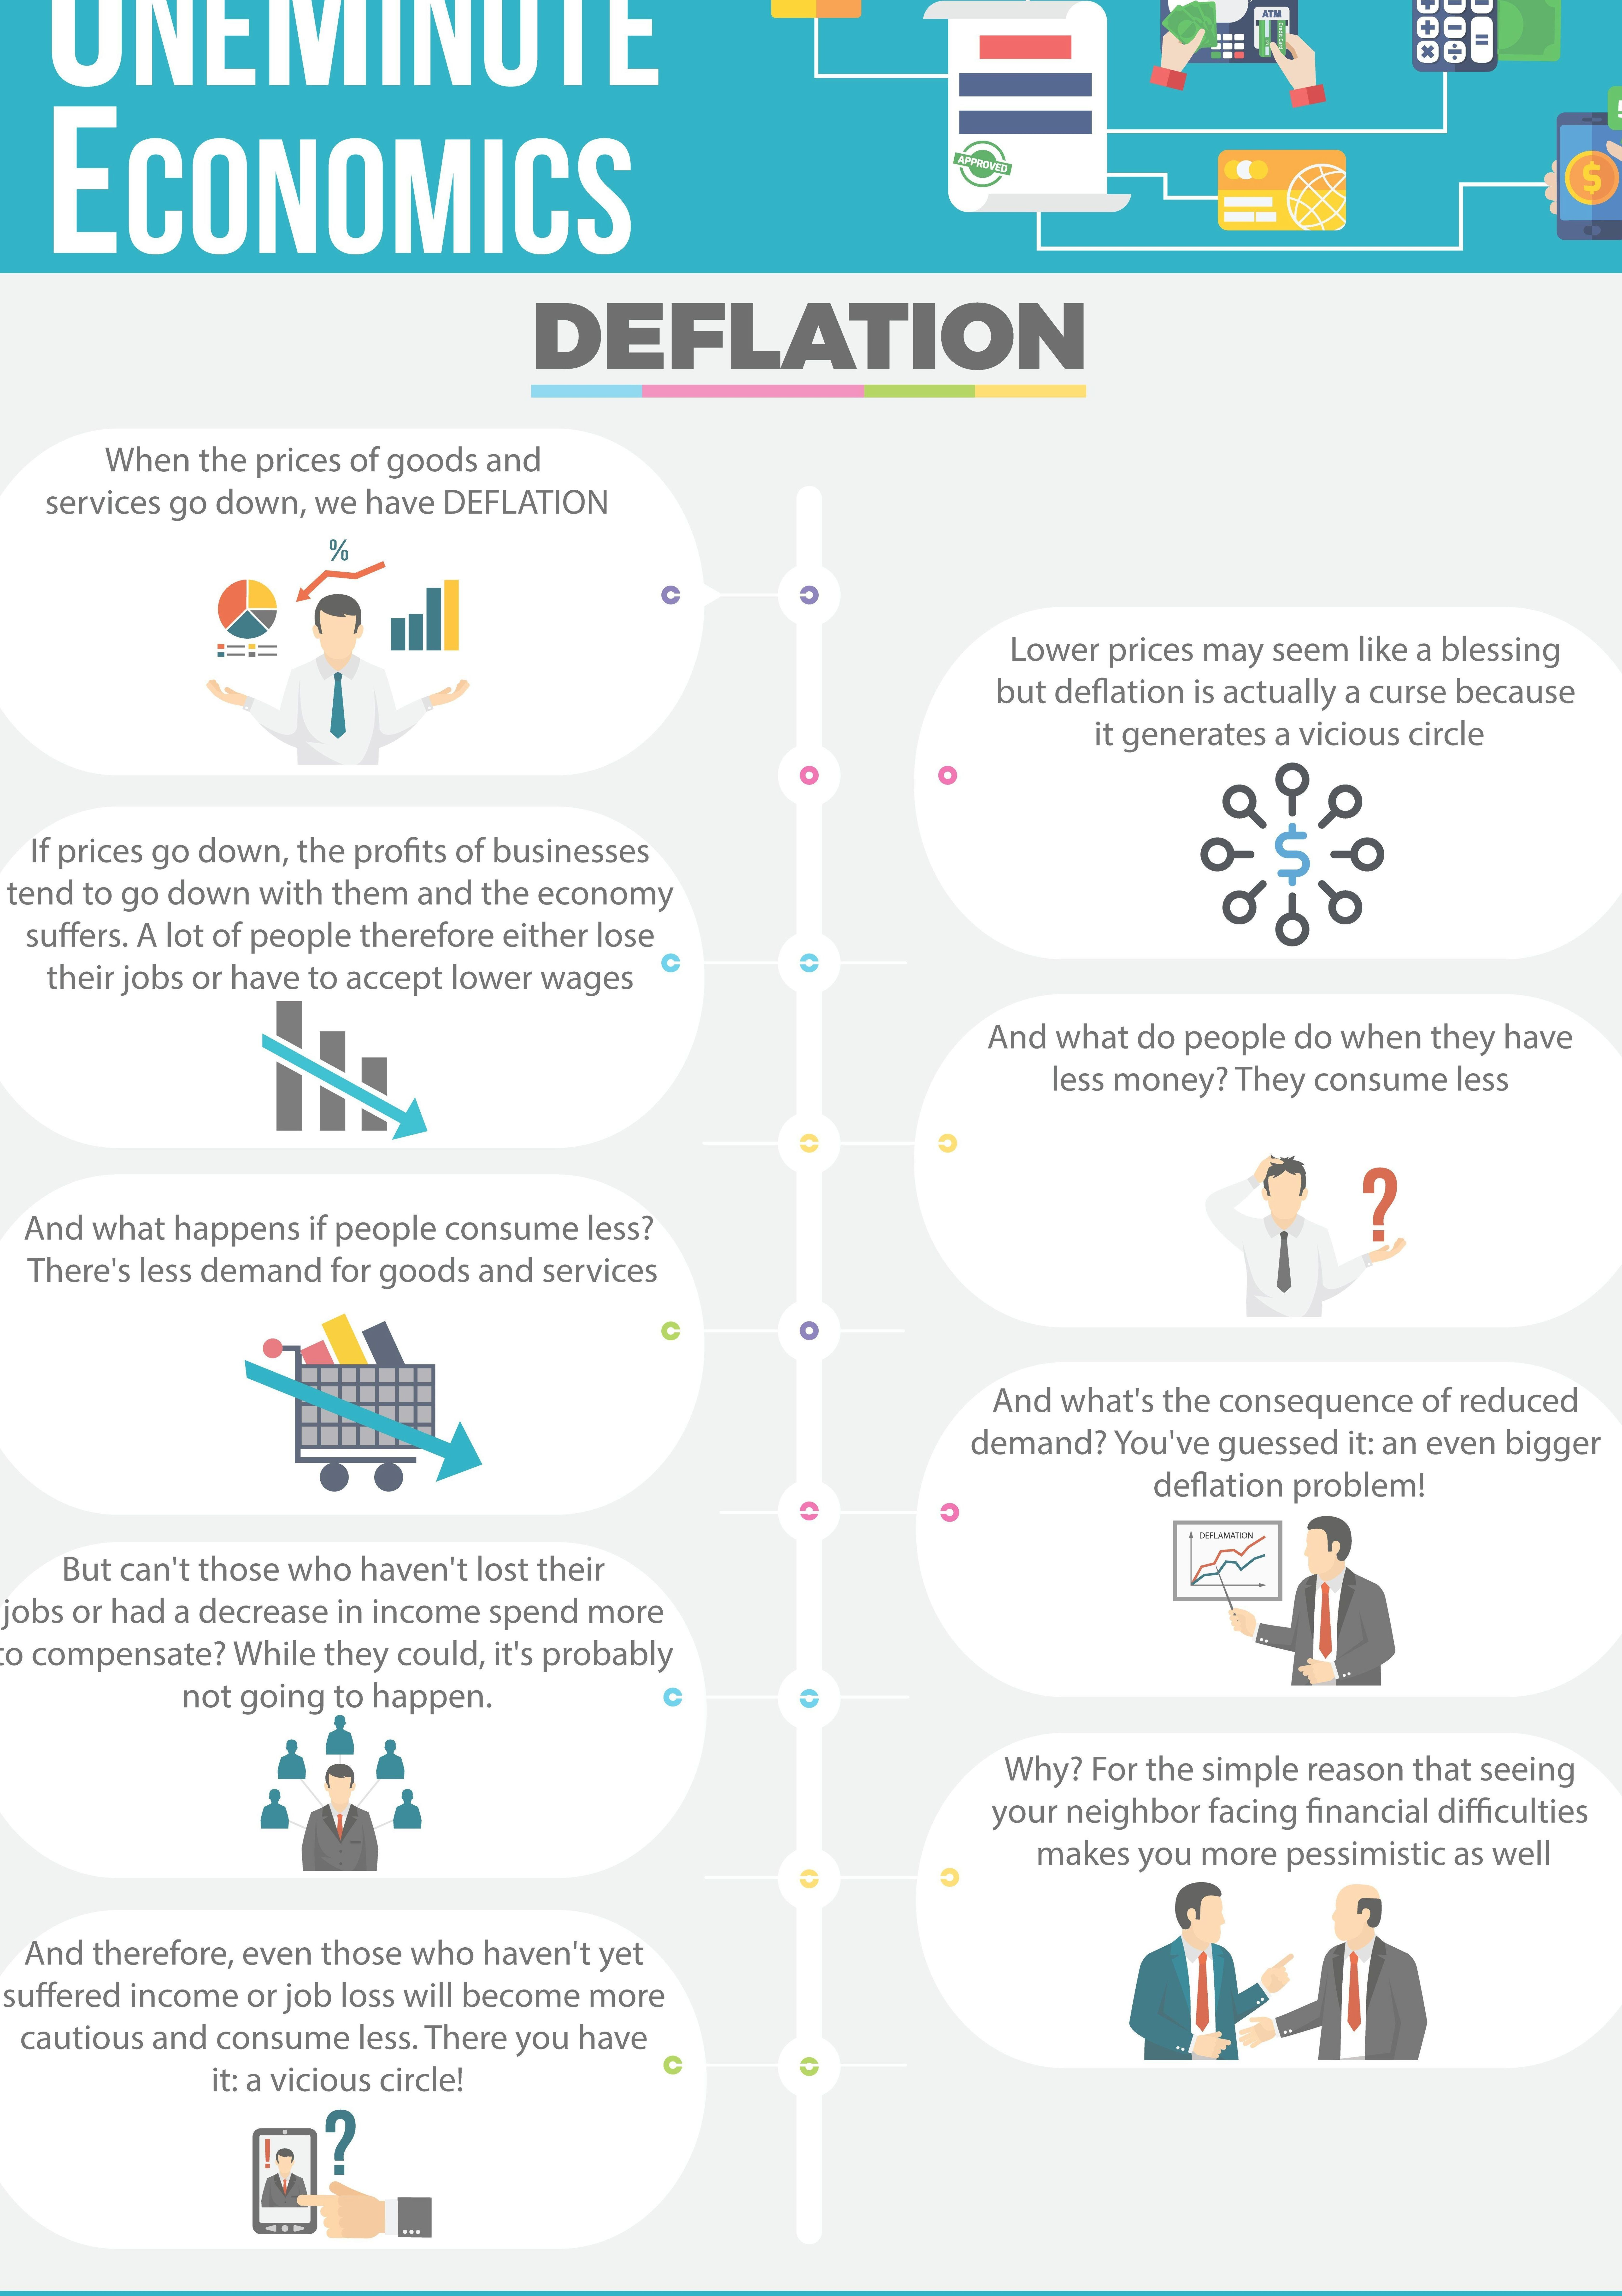 Through This One Minute Economics Infographic As Well As Video If